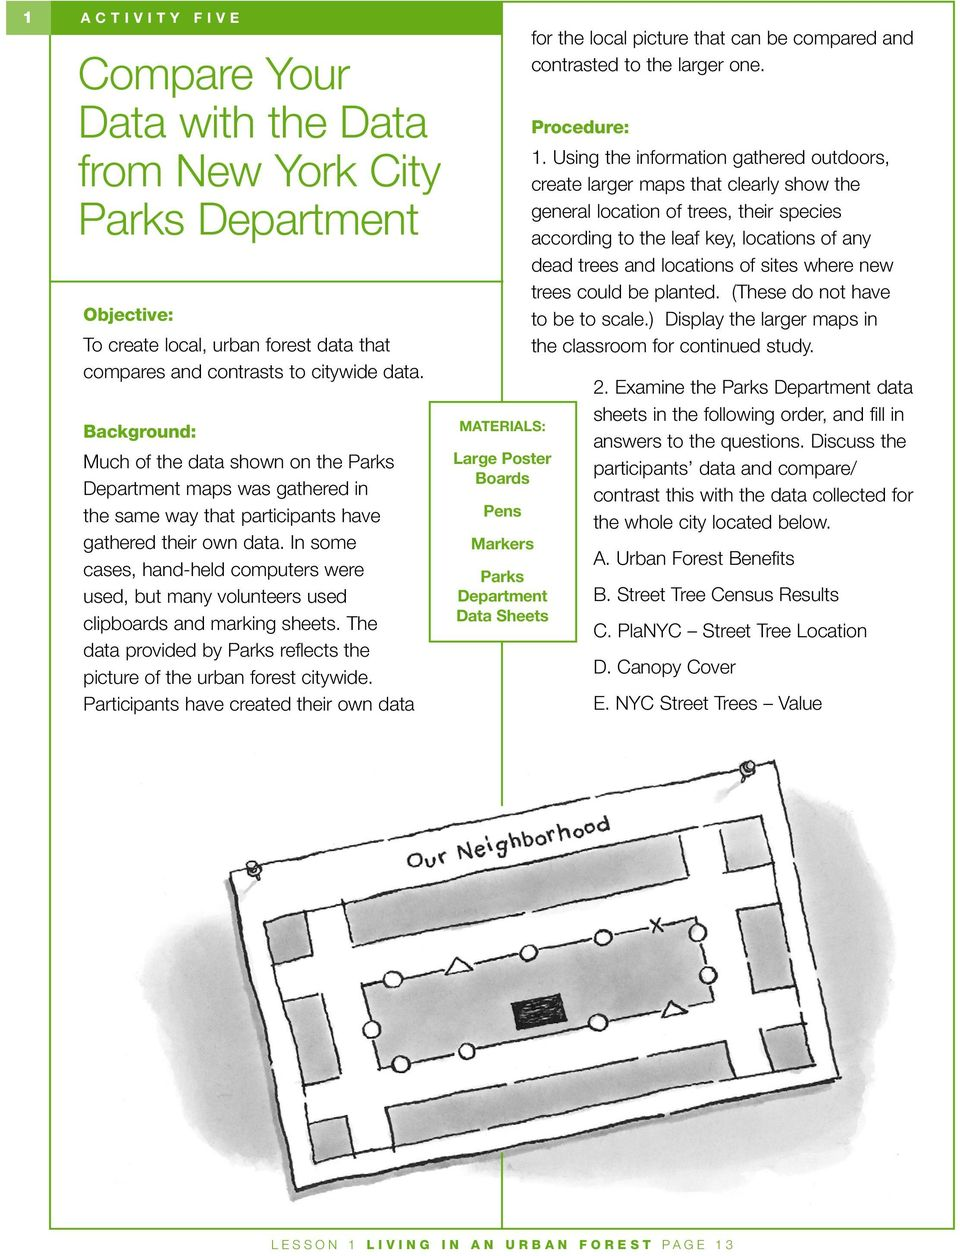 In some cases, hand-held computers were used, but many volunteers used clipboards and marking sheets. The data provided by Parks reflects the picture of the urban forest citywide.